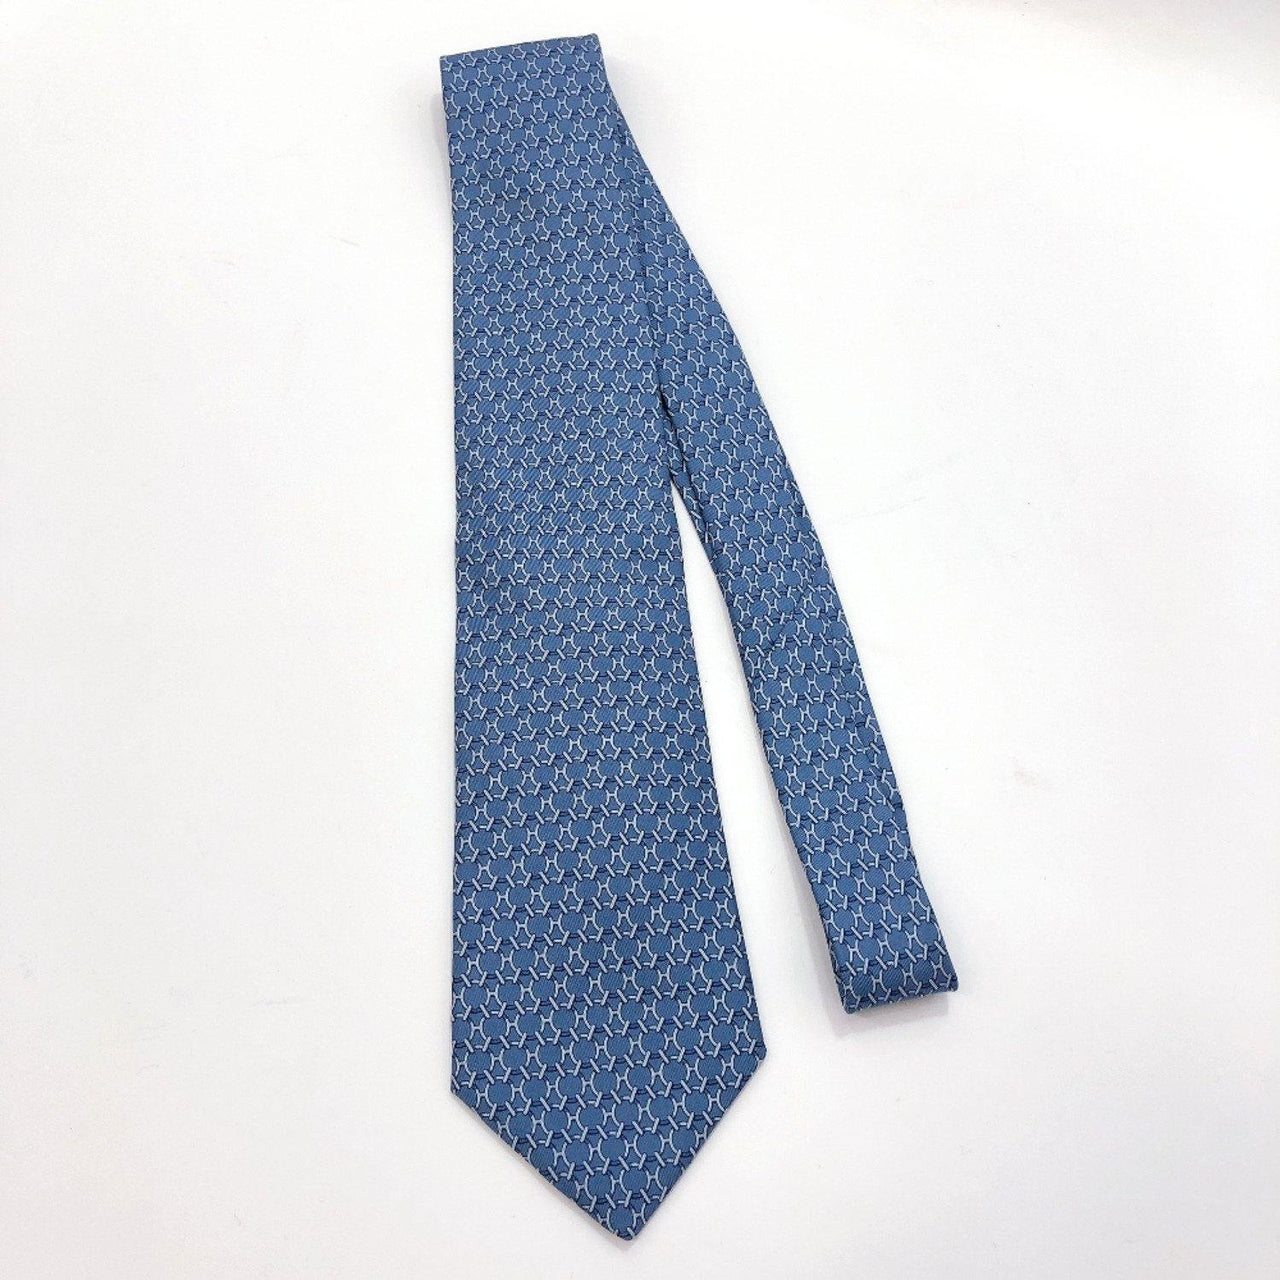 HERMES tie 5171 IA silk Navy Light blue mens Used - JP-BRANDS.com